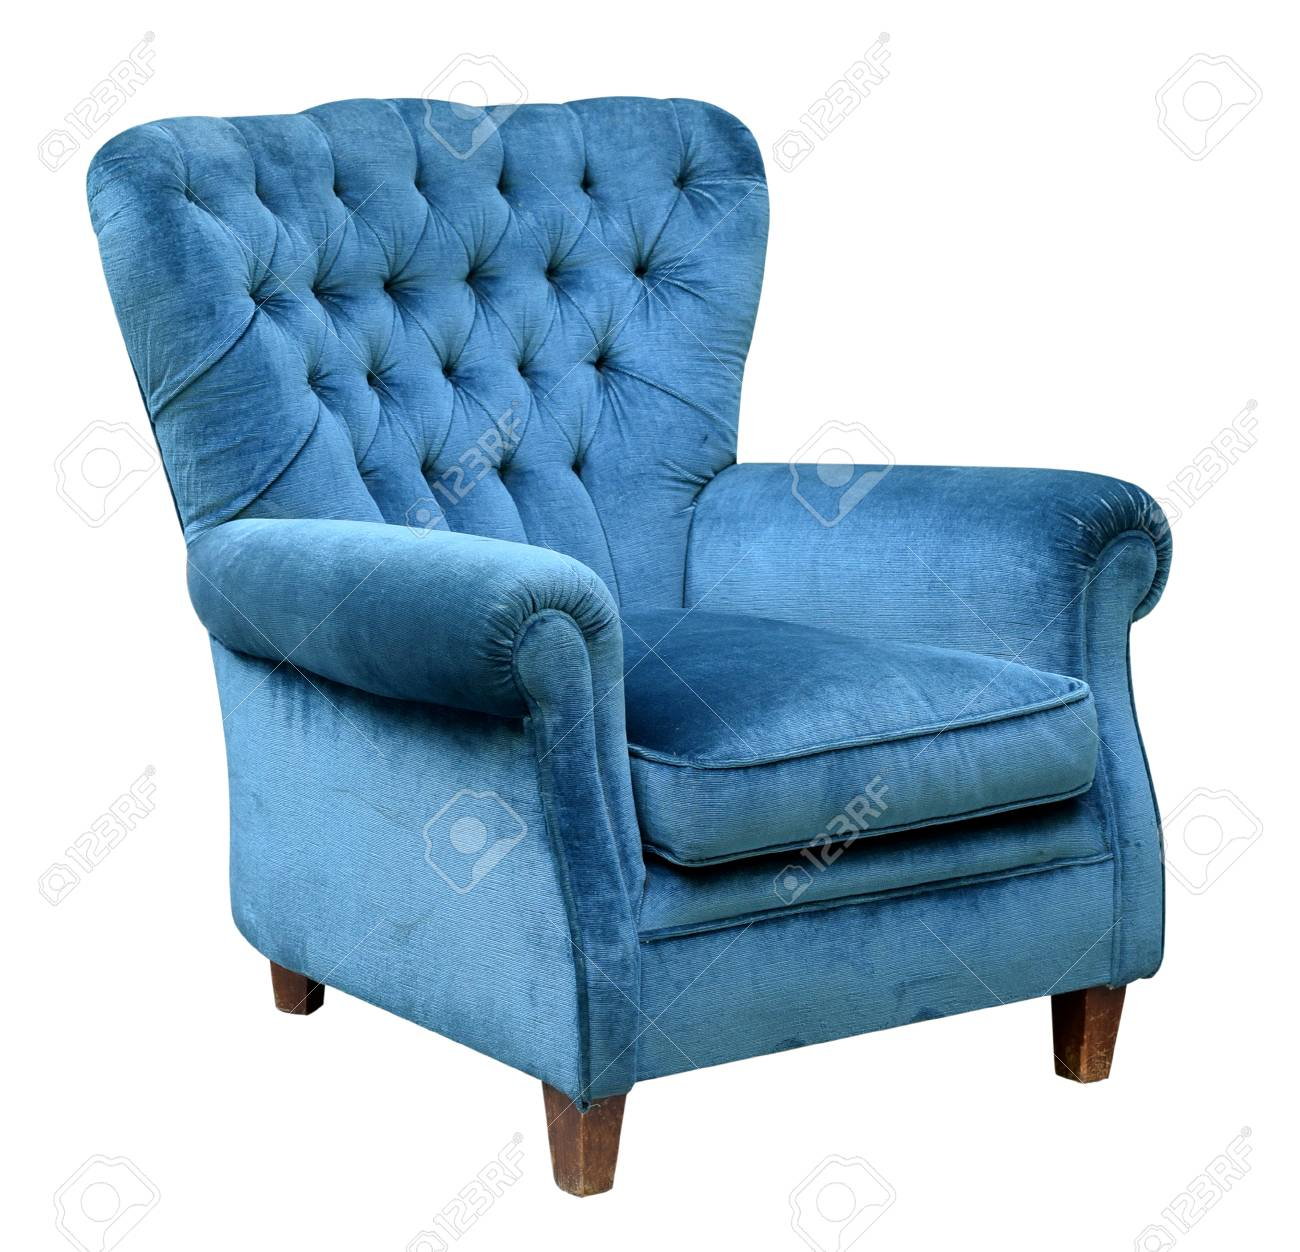 Stock Photo   Upholstered Blue Velvet Armchair With A Retro High Button  Back Design Isolated On White In A Three Quarter View